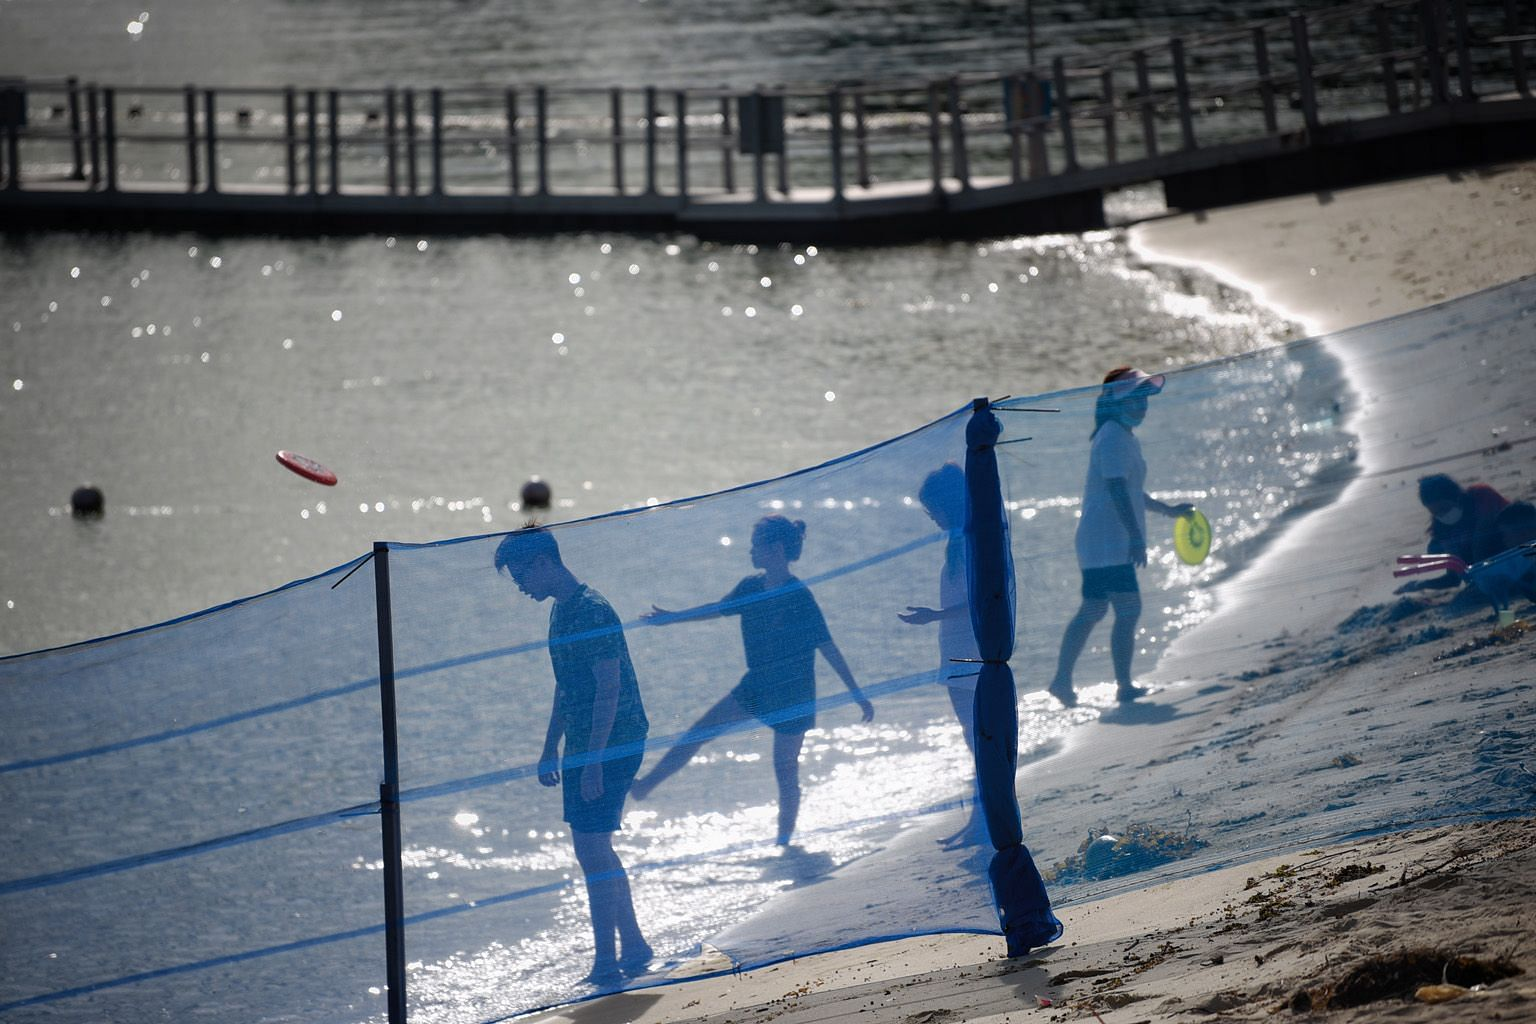 People playing with frisbees behind a barrier separating different sections of Siloso Beach on Sentosa last Wednesday. On why many people are planning to use their tourism vouchers on attractions and staycations, Dr Michael Chiam, a senior tourism le